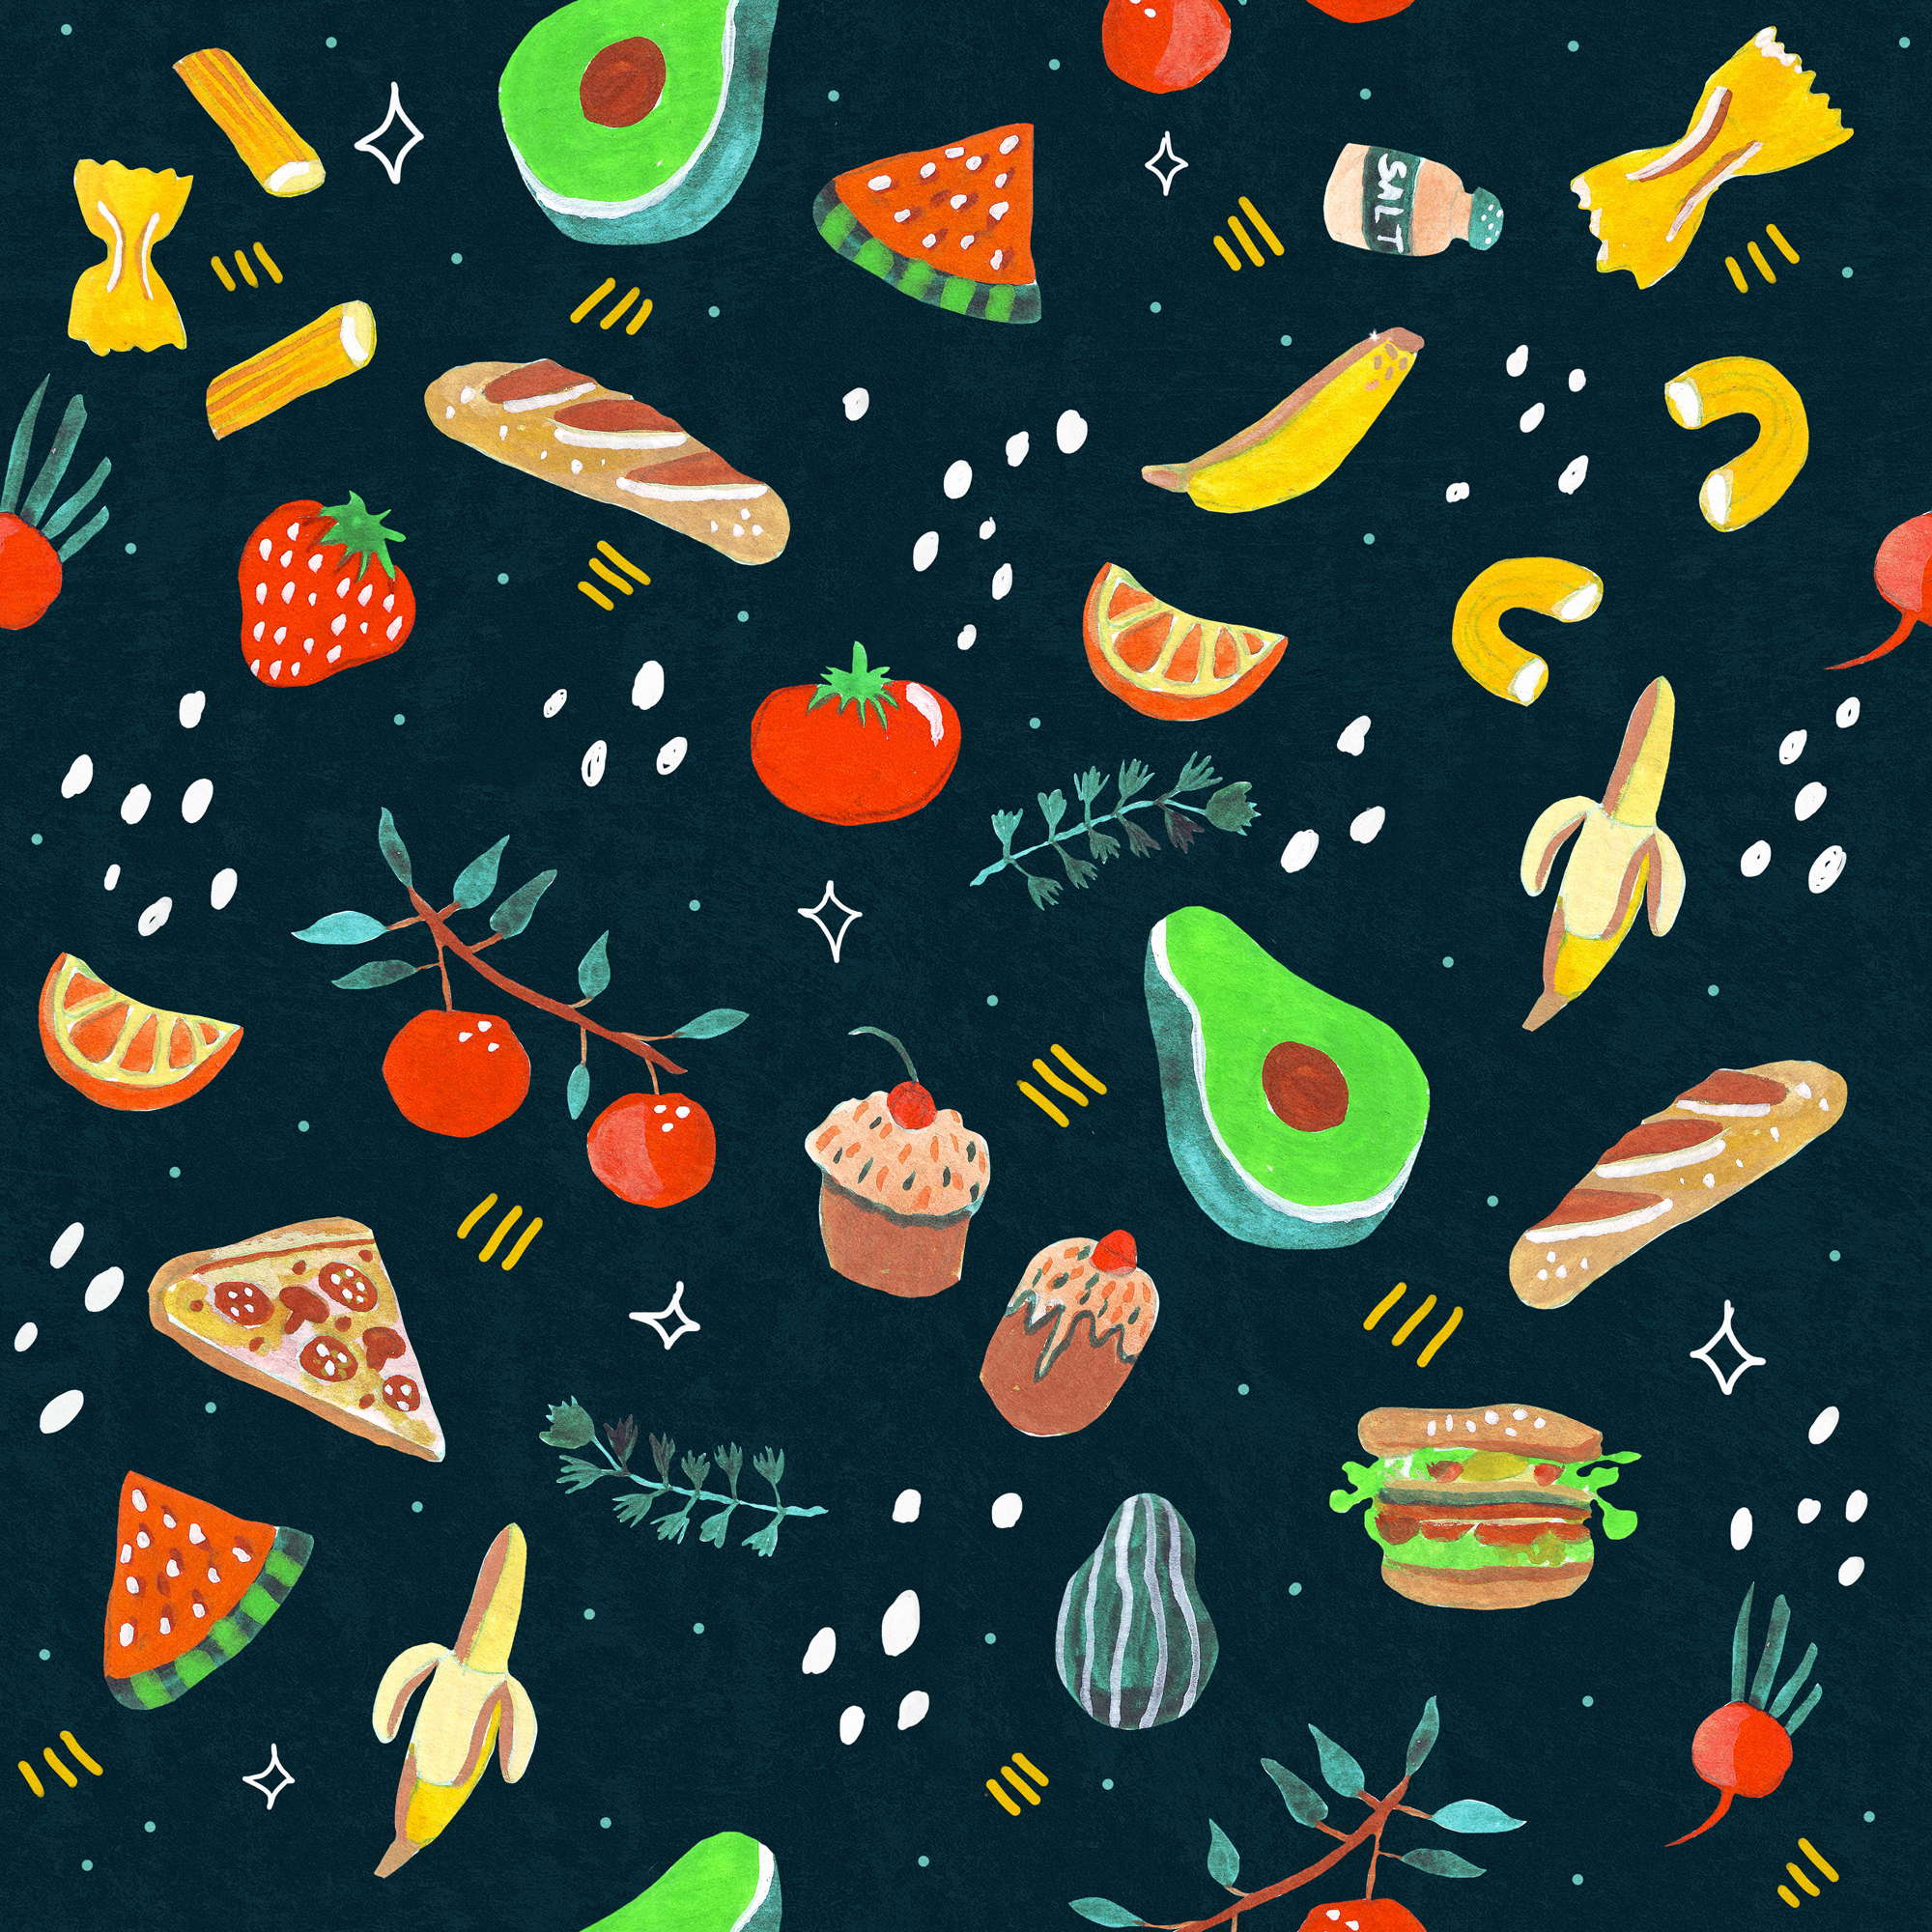 Food Illustrations Pattern by Anca Pora